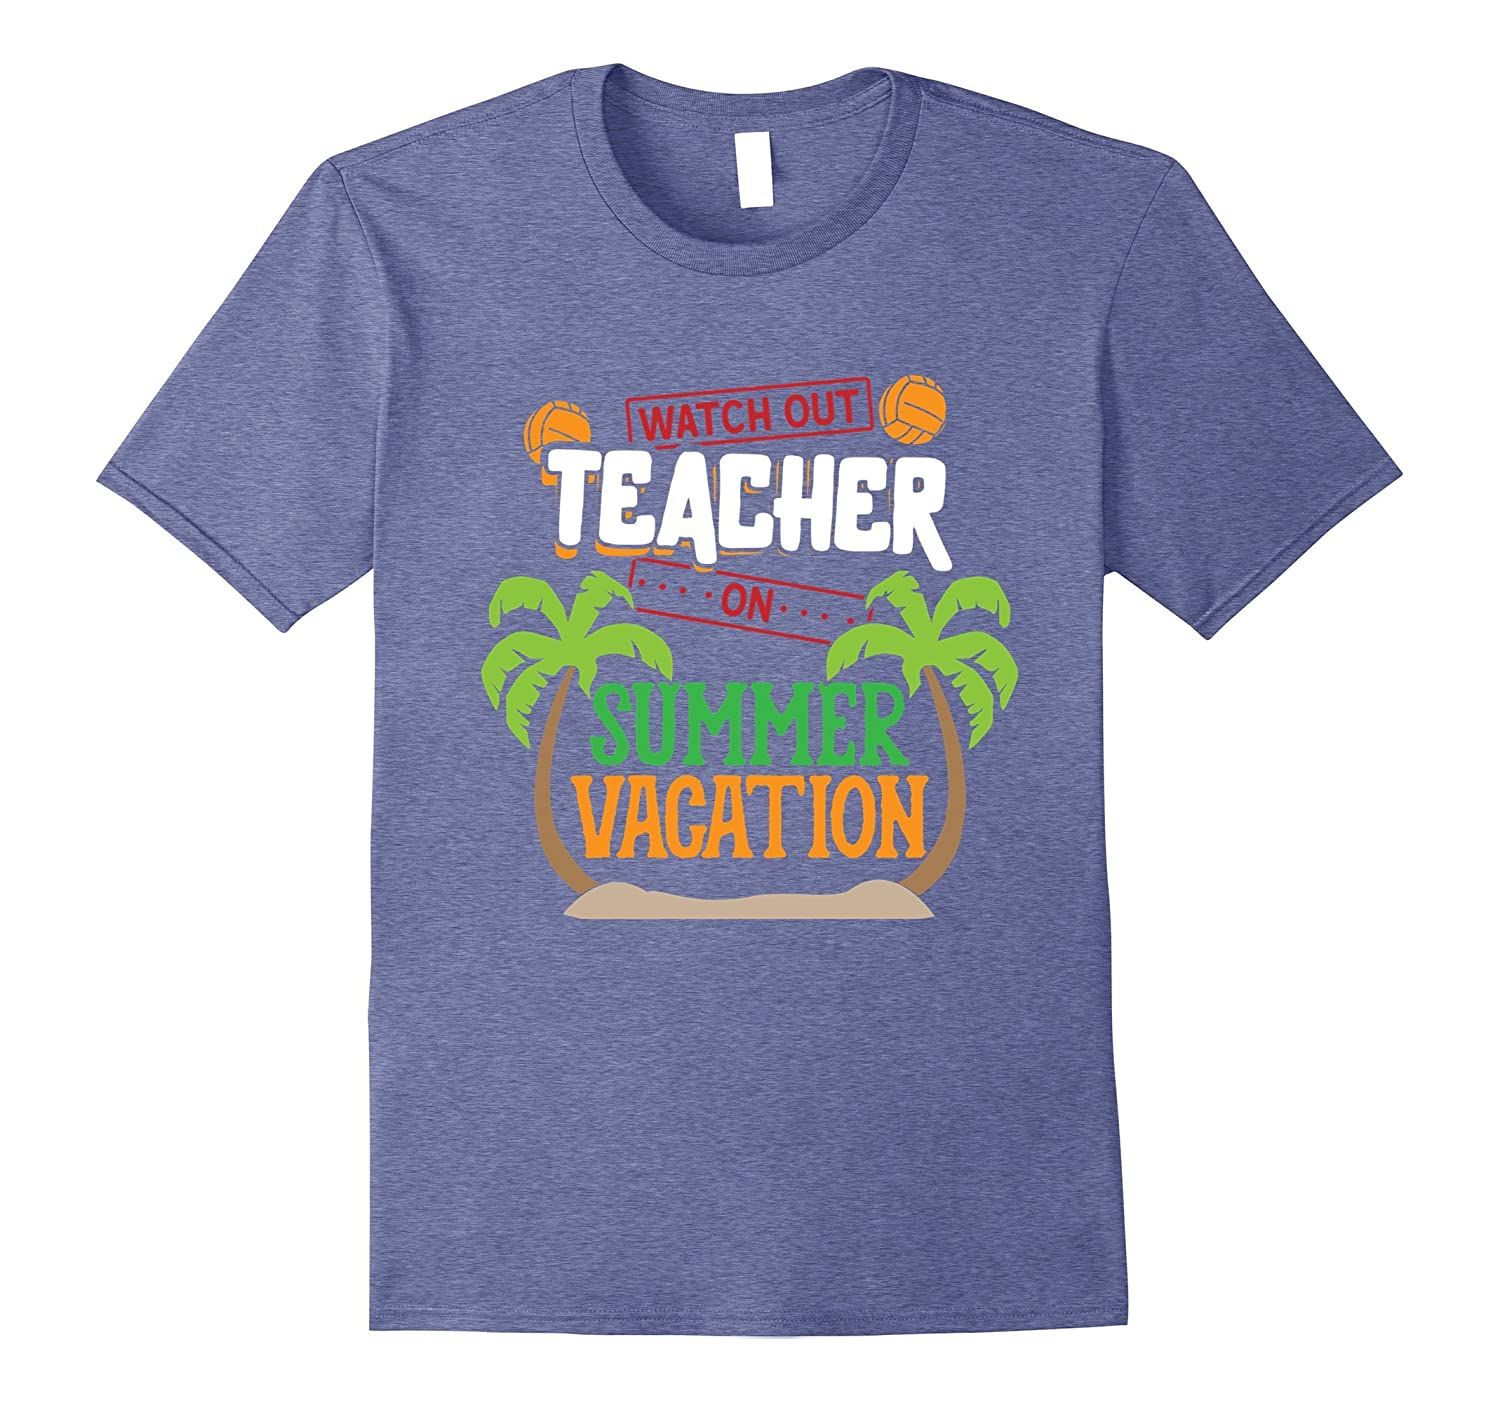 c950be671f1d Watch Out Teacher On Summer Vacation T-shirt-PL – Polozatee